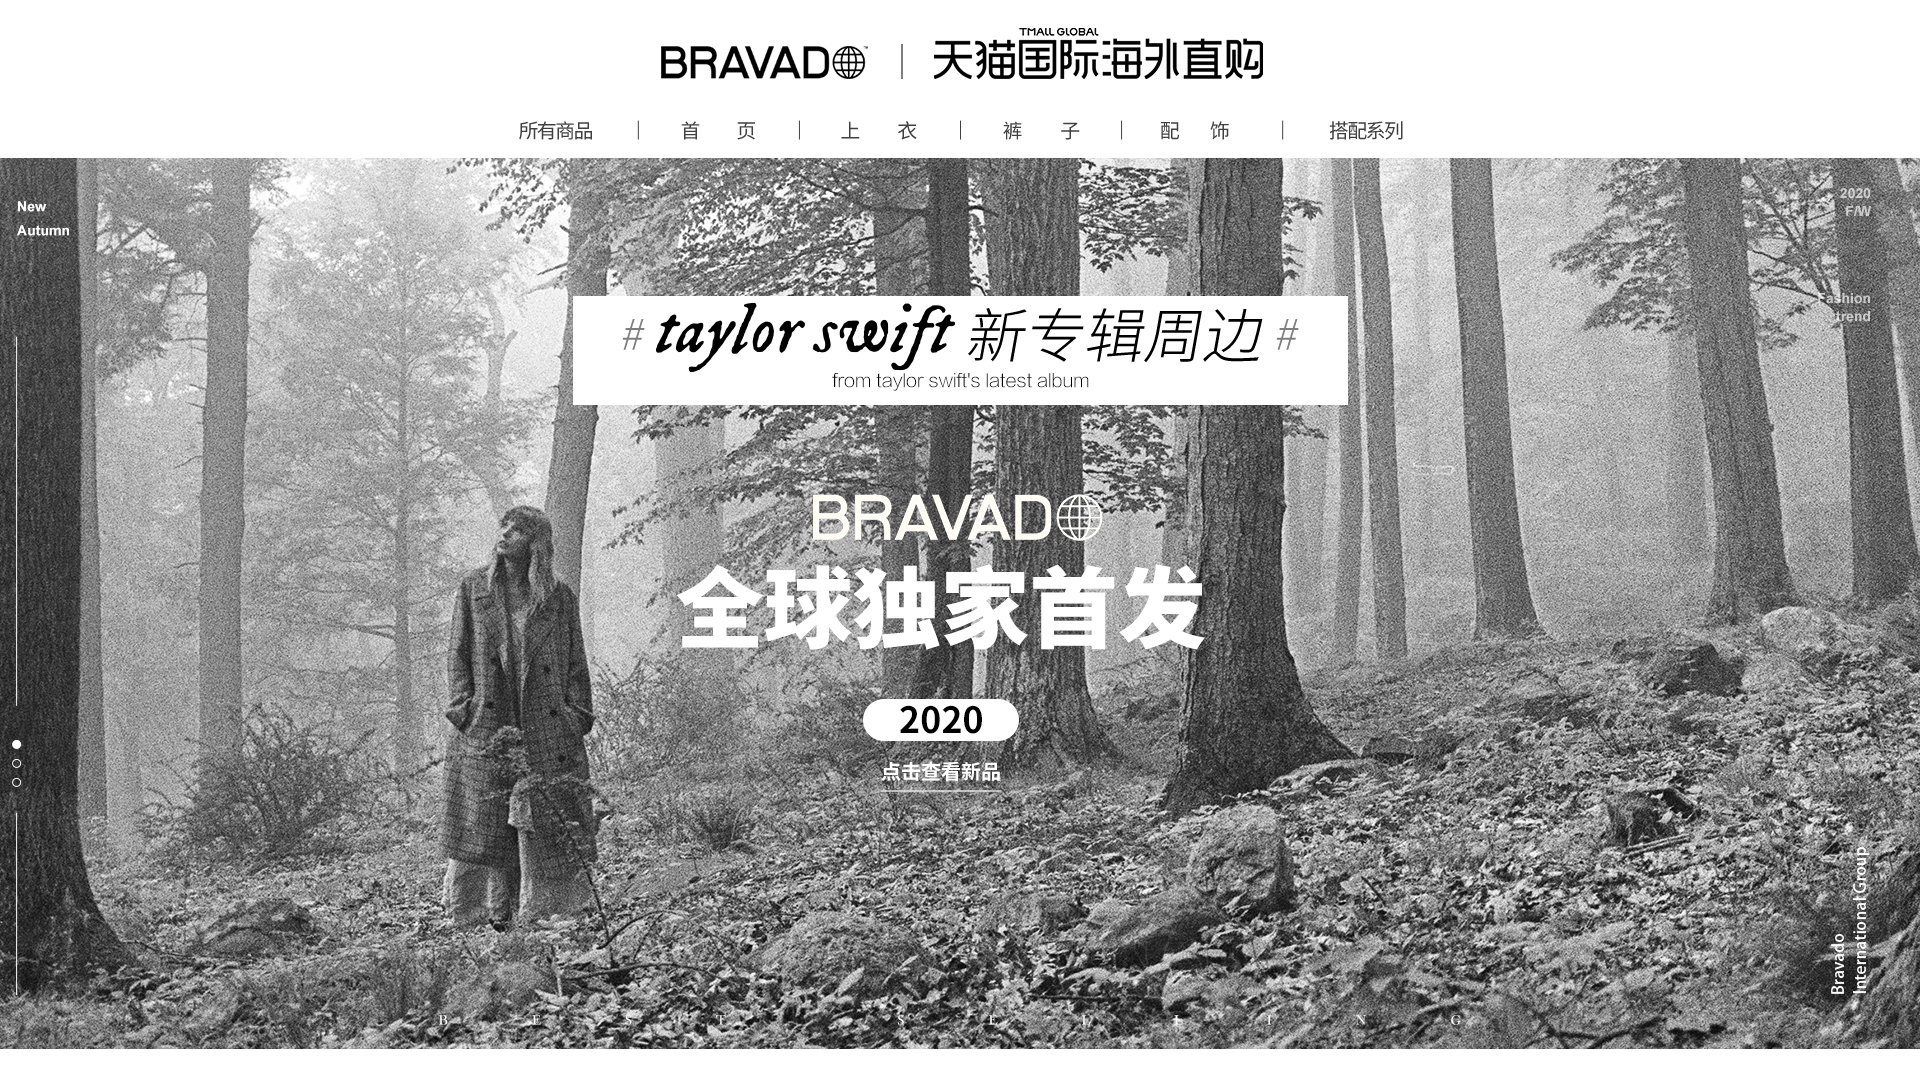 Bravado Launches Tmall Global Store to Bring Music Merchandise to China